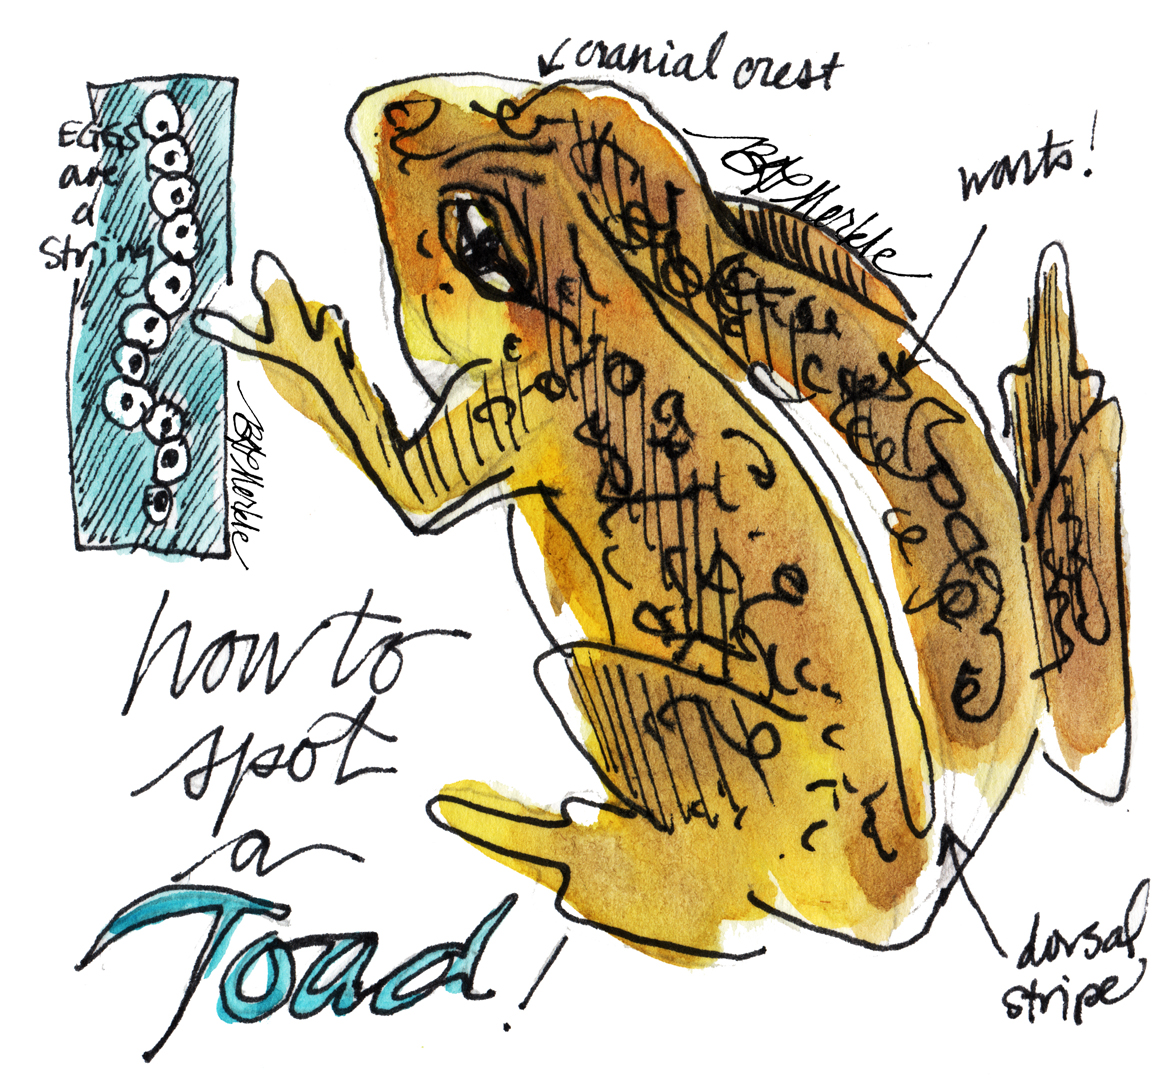 Diagram of how to identify toad (as different from frog)_Illustration by Bethann Garramon Merkle, copyright 2015